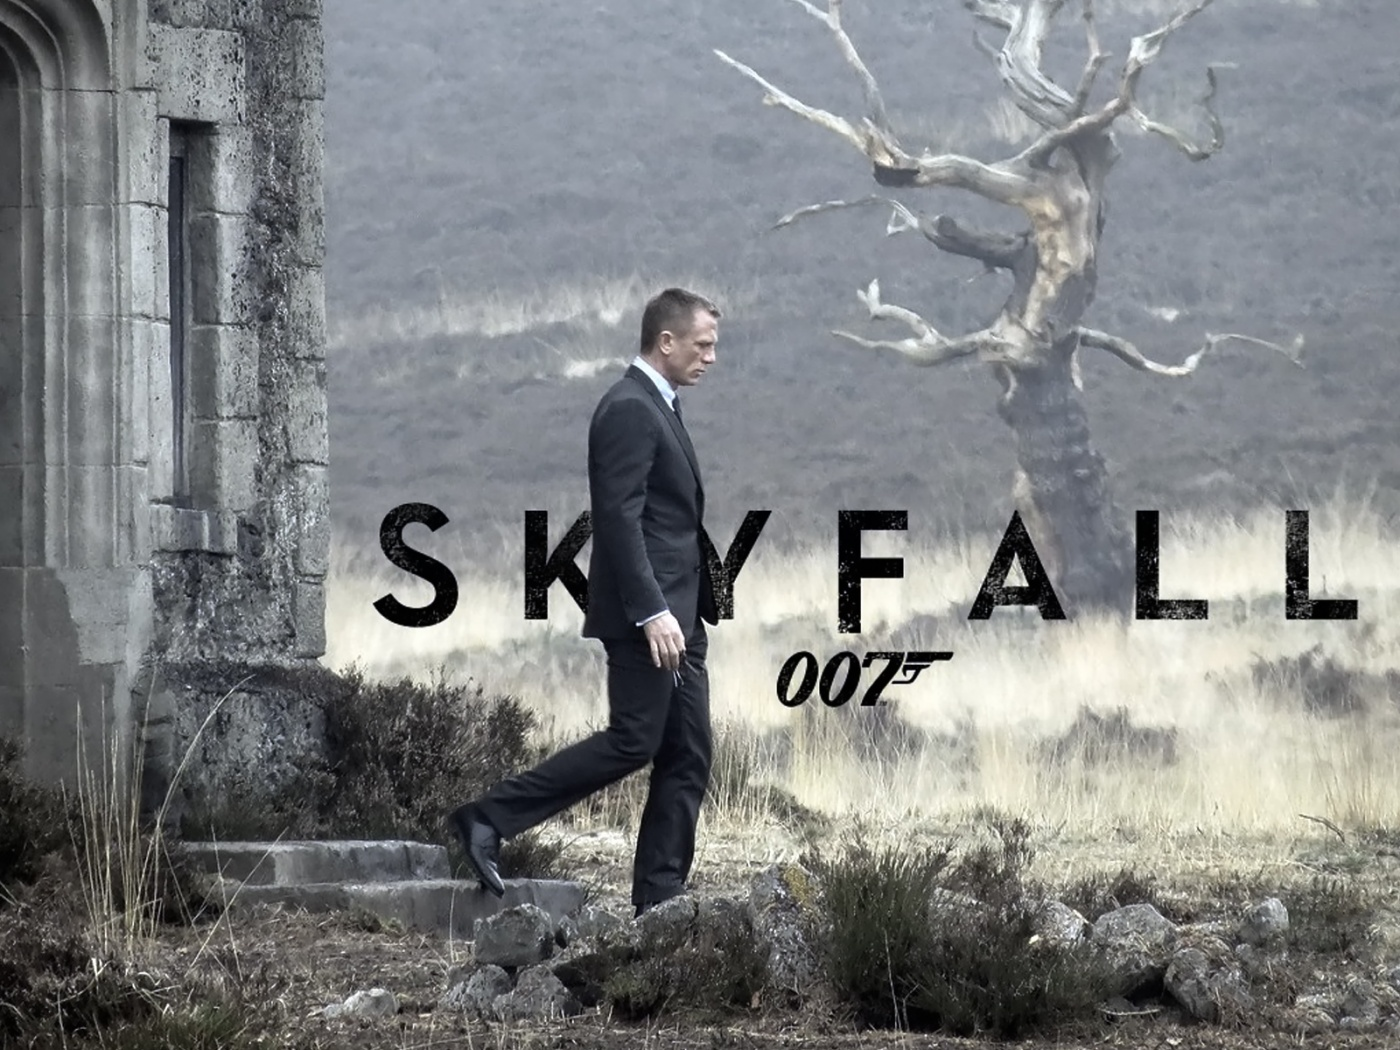 HD Wallpapers for iPhone 5   James Bond 007 Skyfall Wallpapers 1400x1050